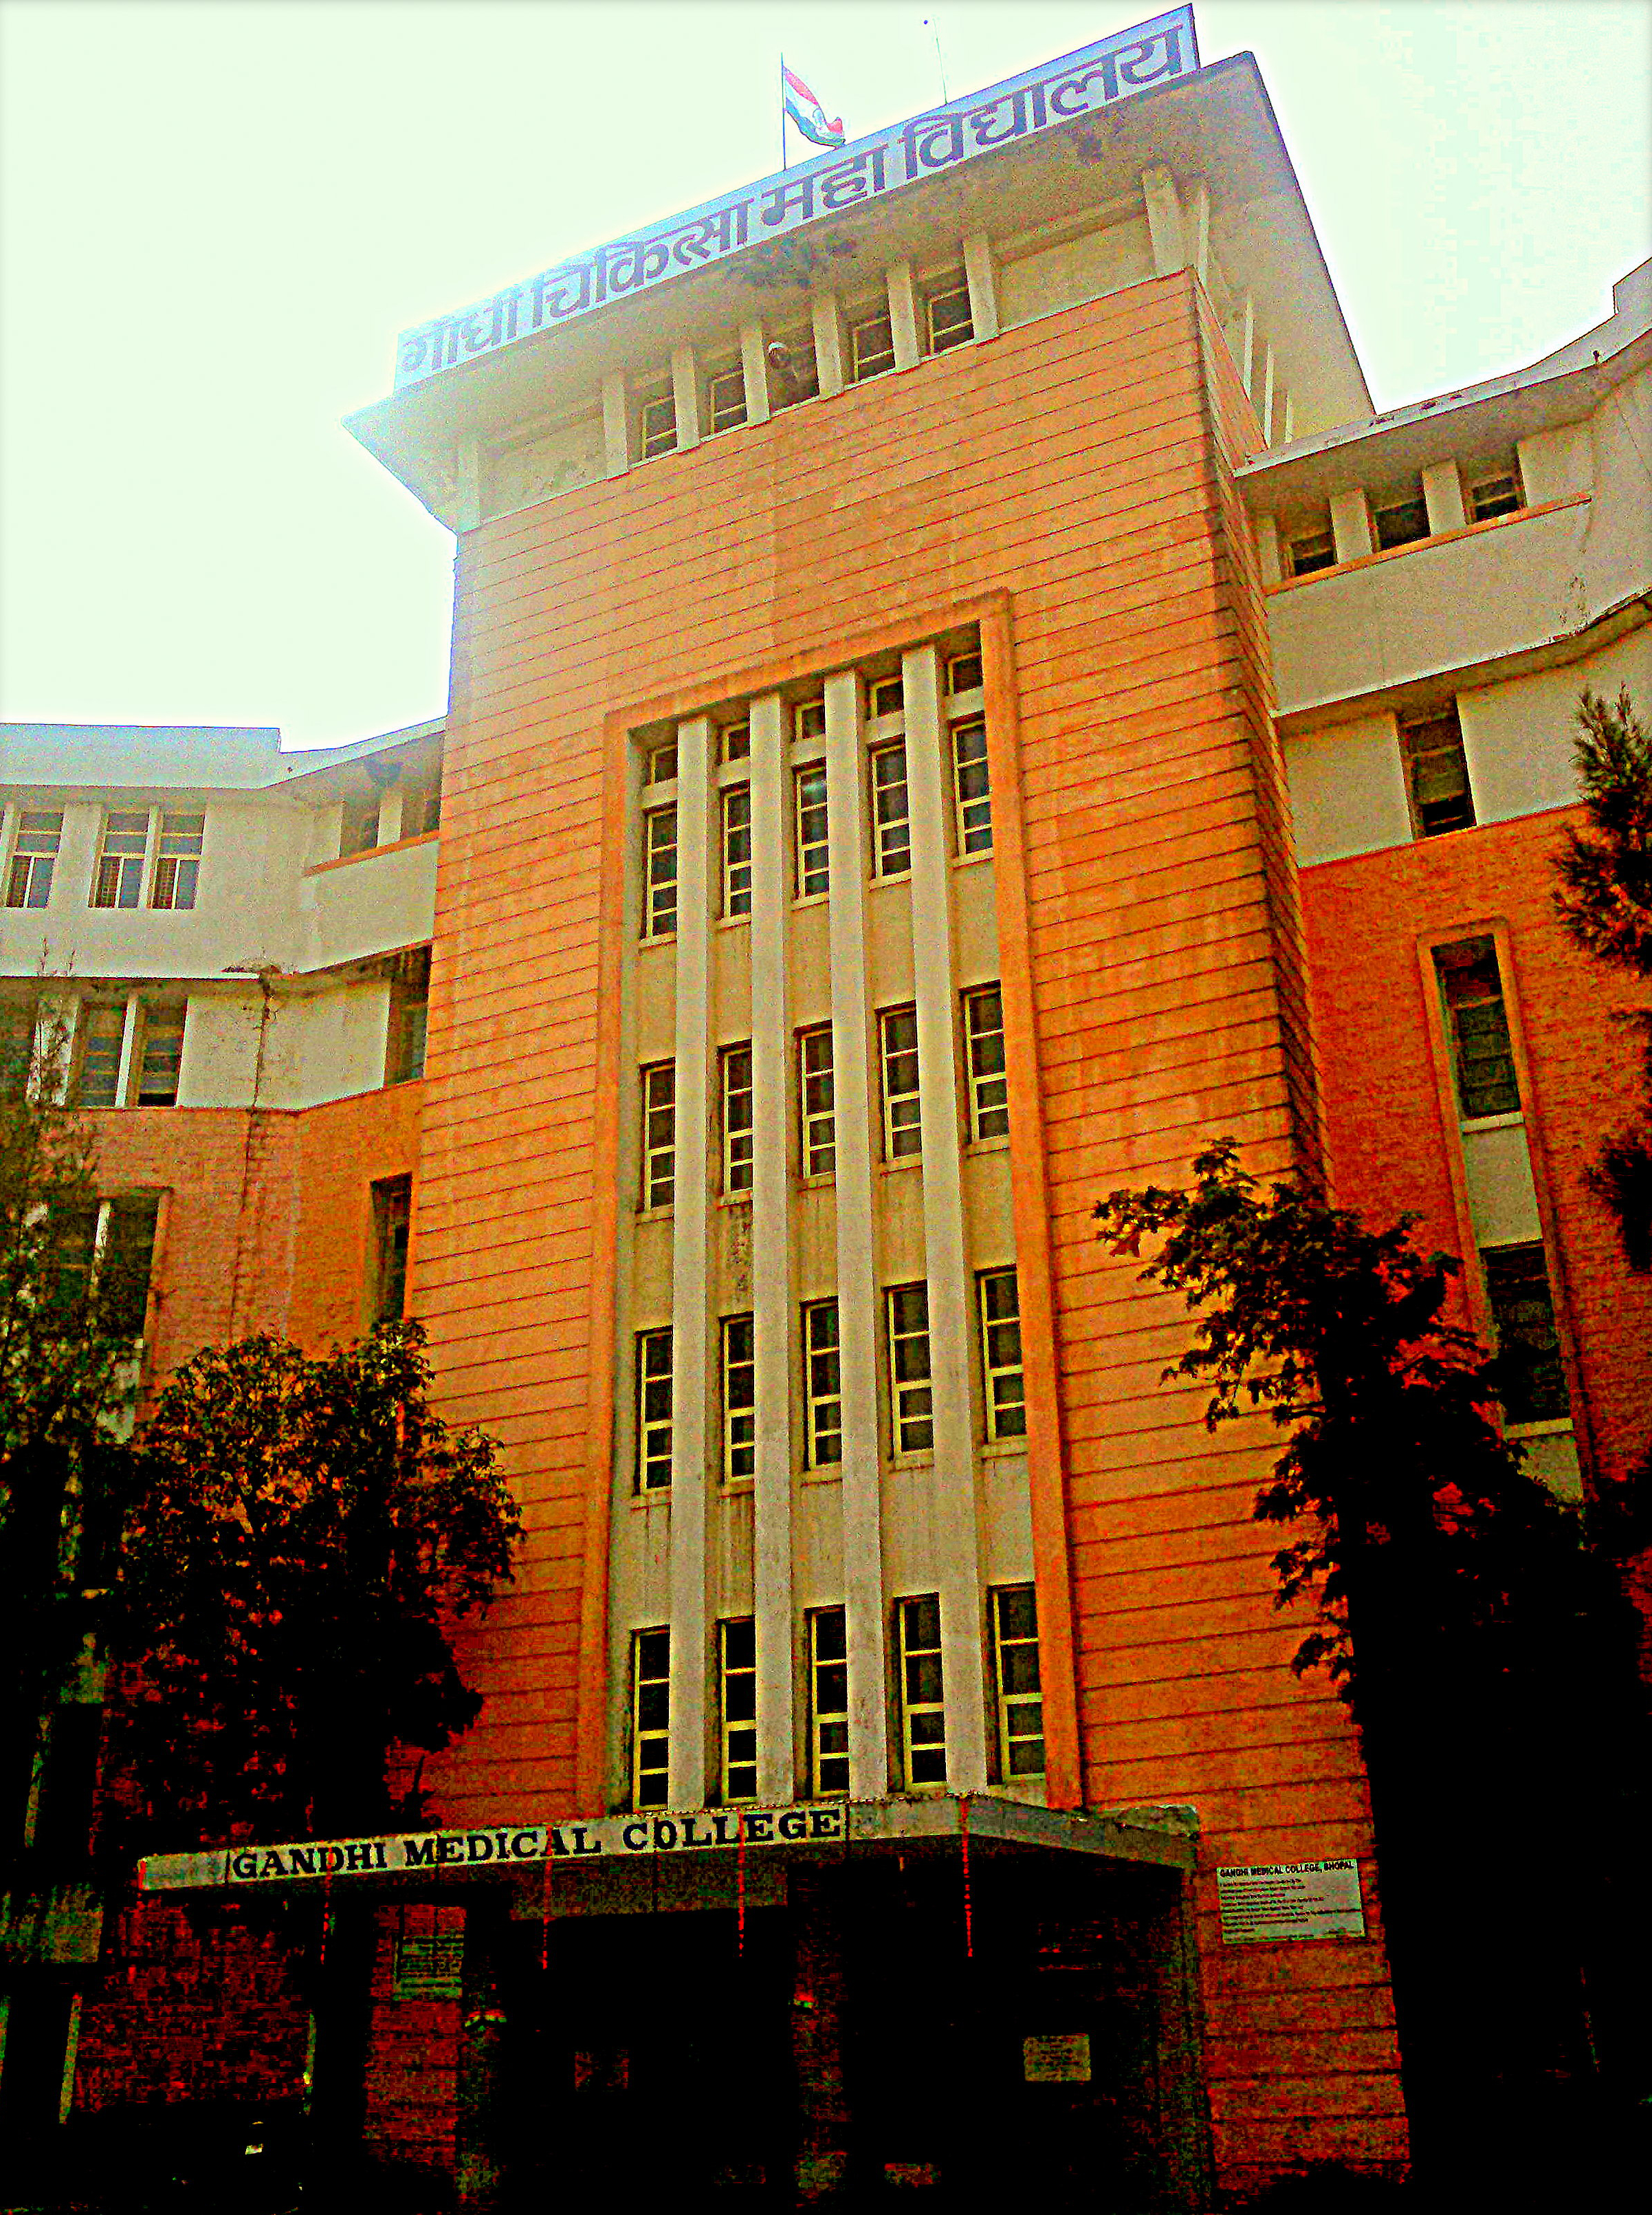 E%2fed%2fgandhi medical college%2c bhopal